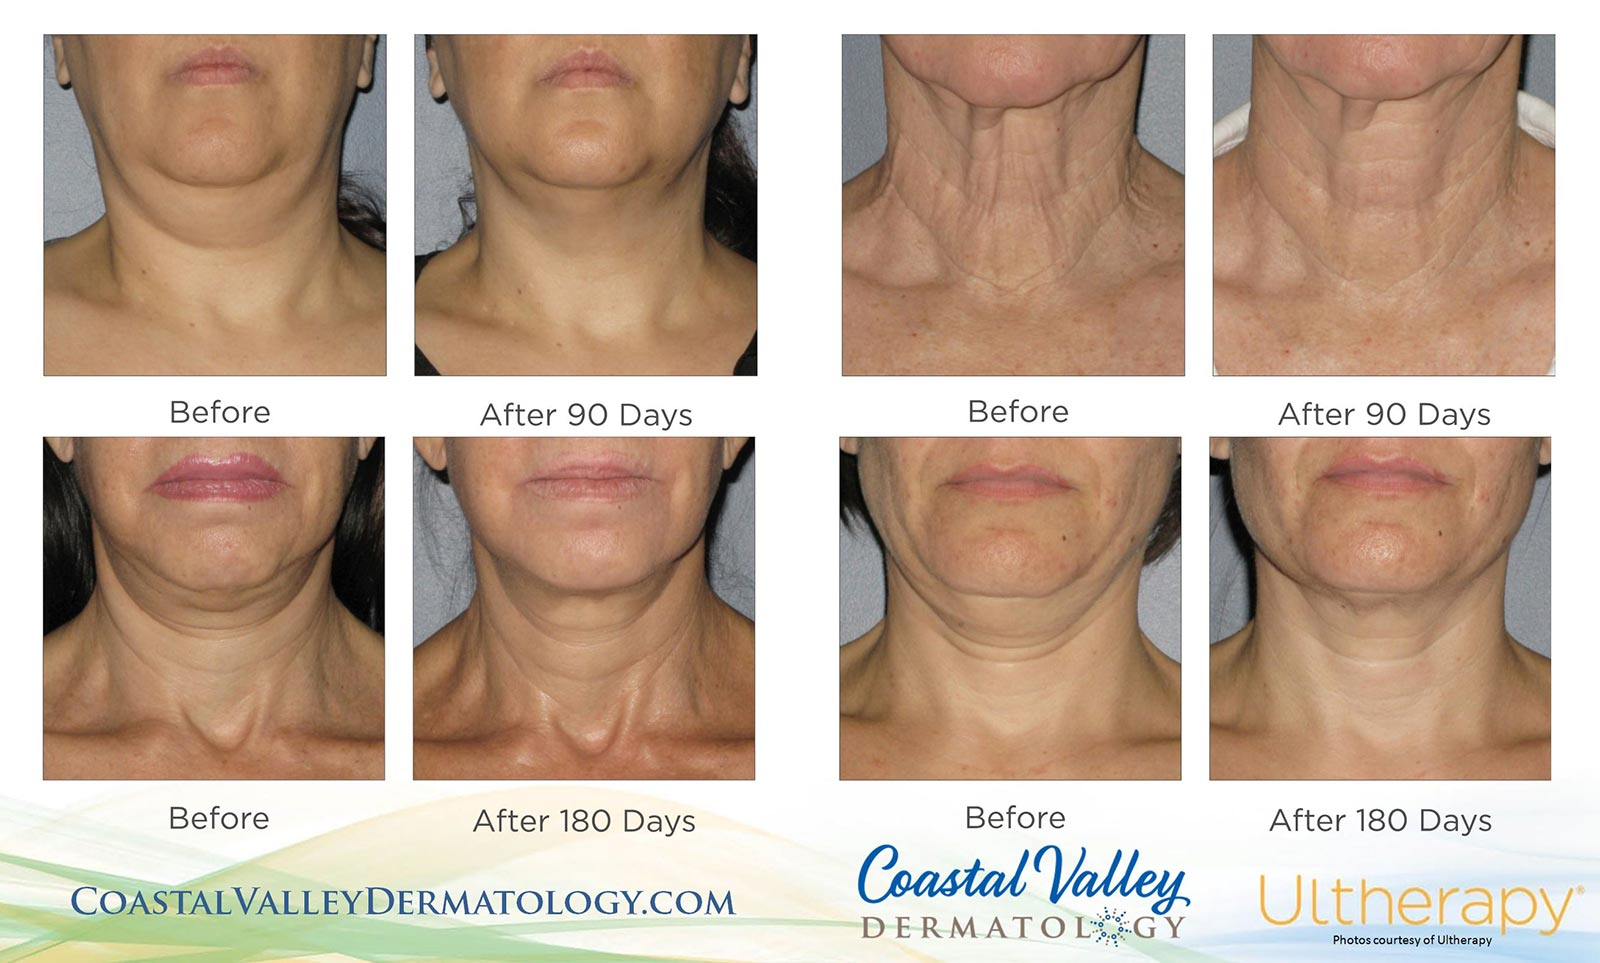 coastal-valley-dermatology-carmel-ultherapy-chin-neck-results-photo